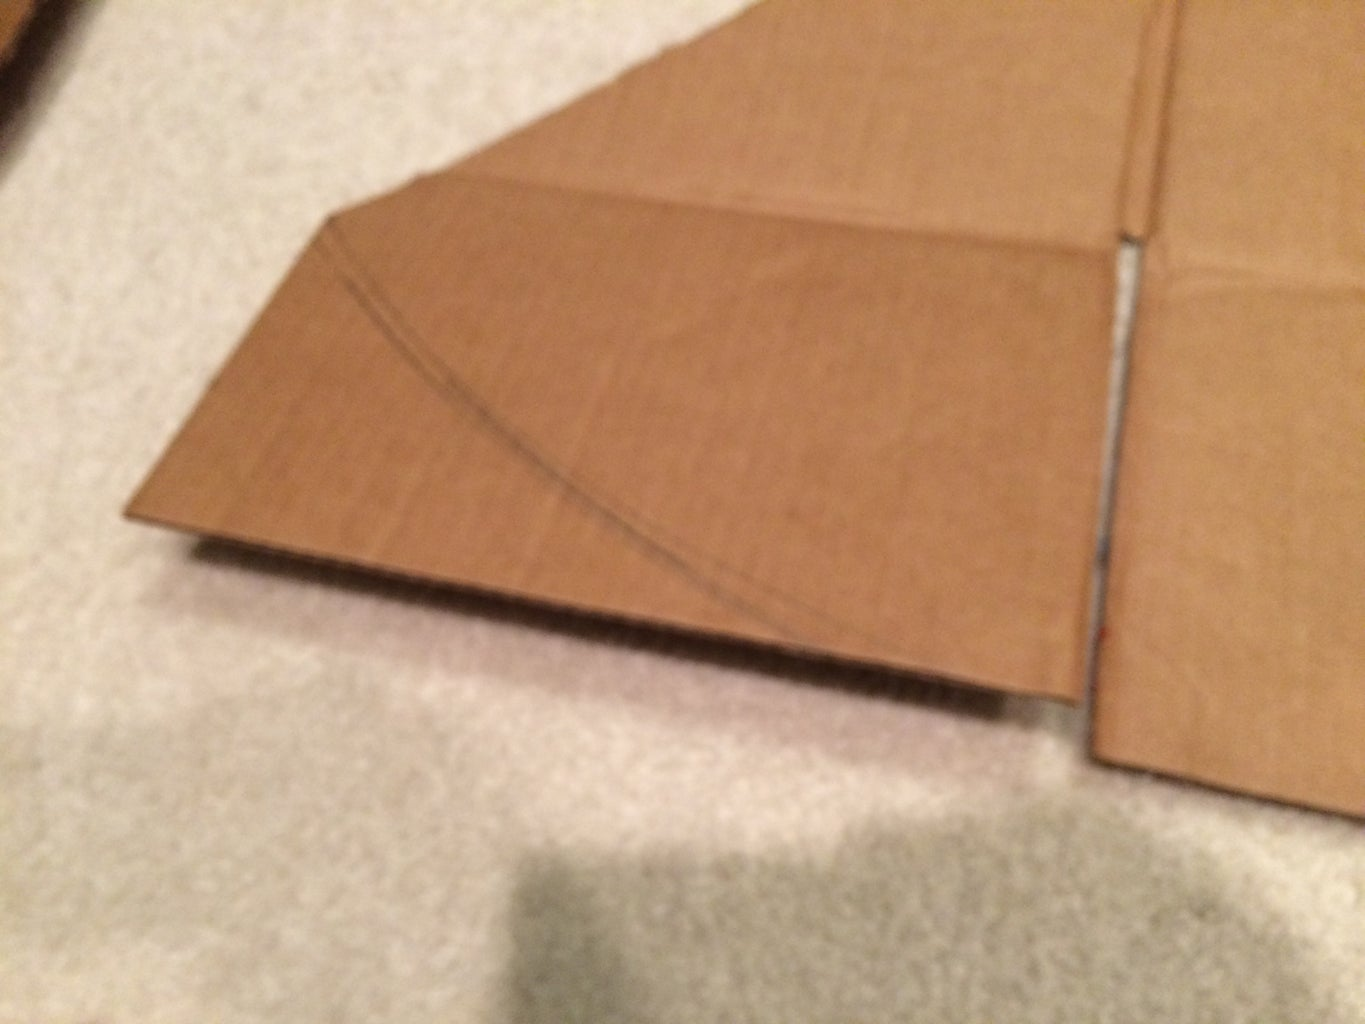 (Optional) Build a Mock-up Out of Cardboard